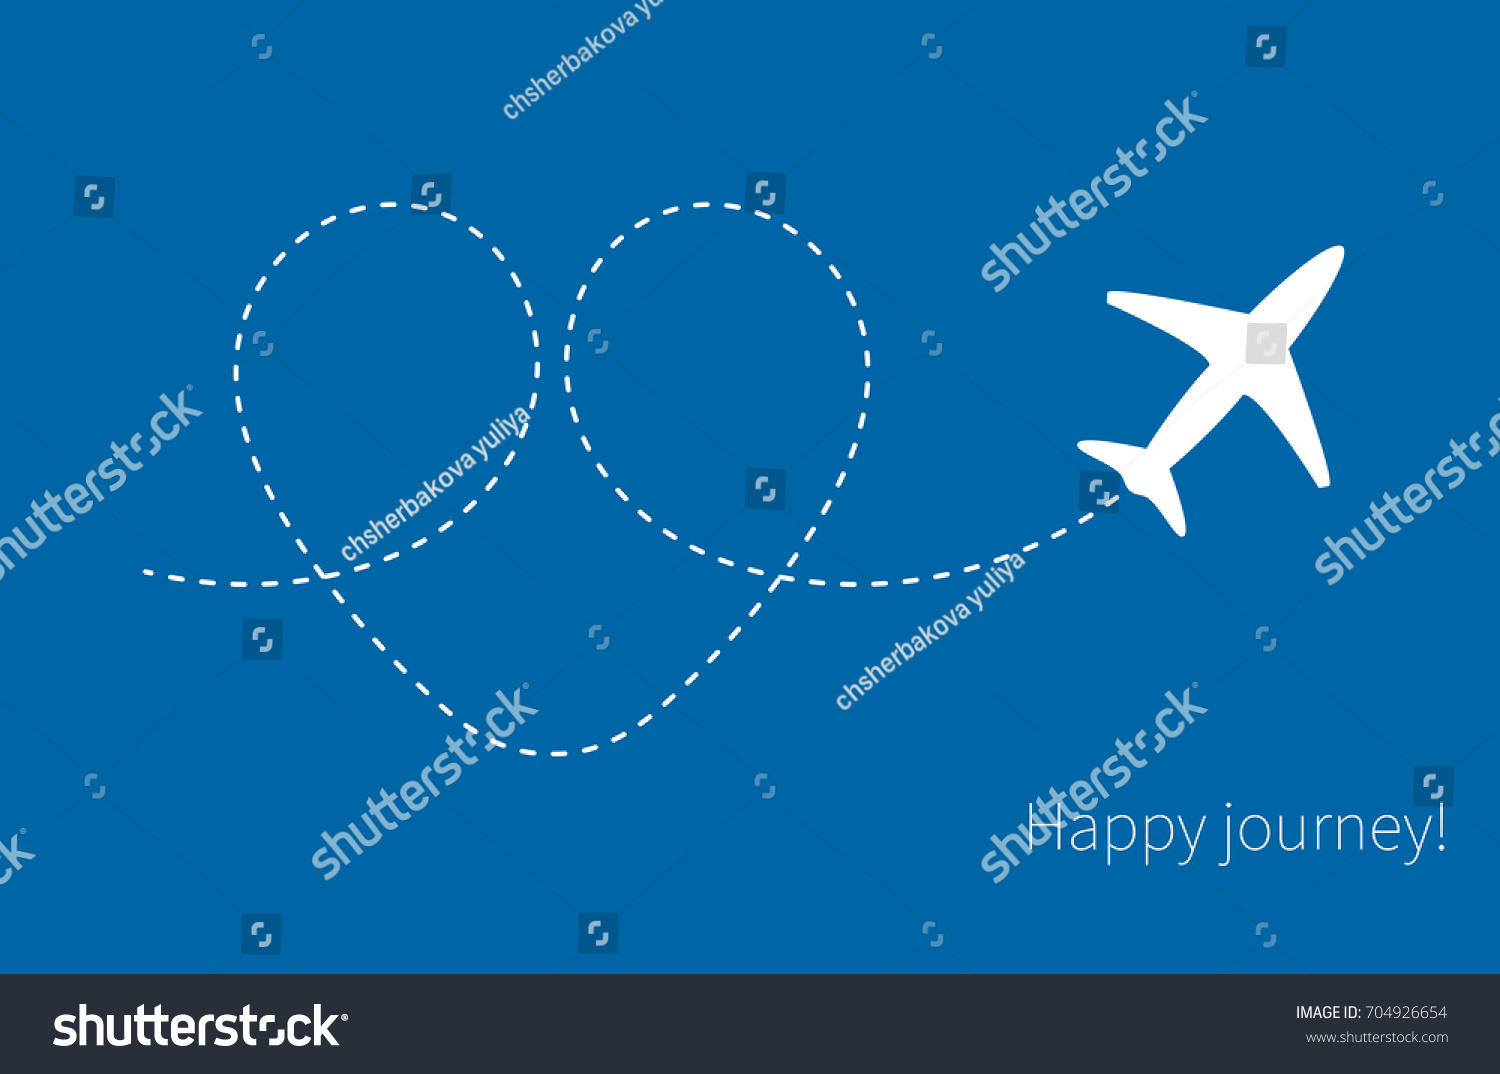 Banner happy journey white plane trace stock vector 704926654 white plane with trace in form of heart on blue sky background thecheapjerseys Image collections